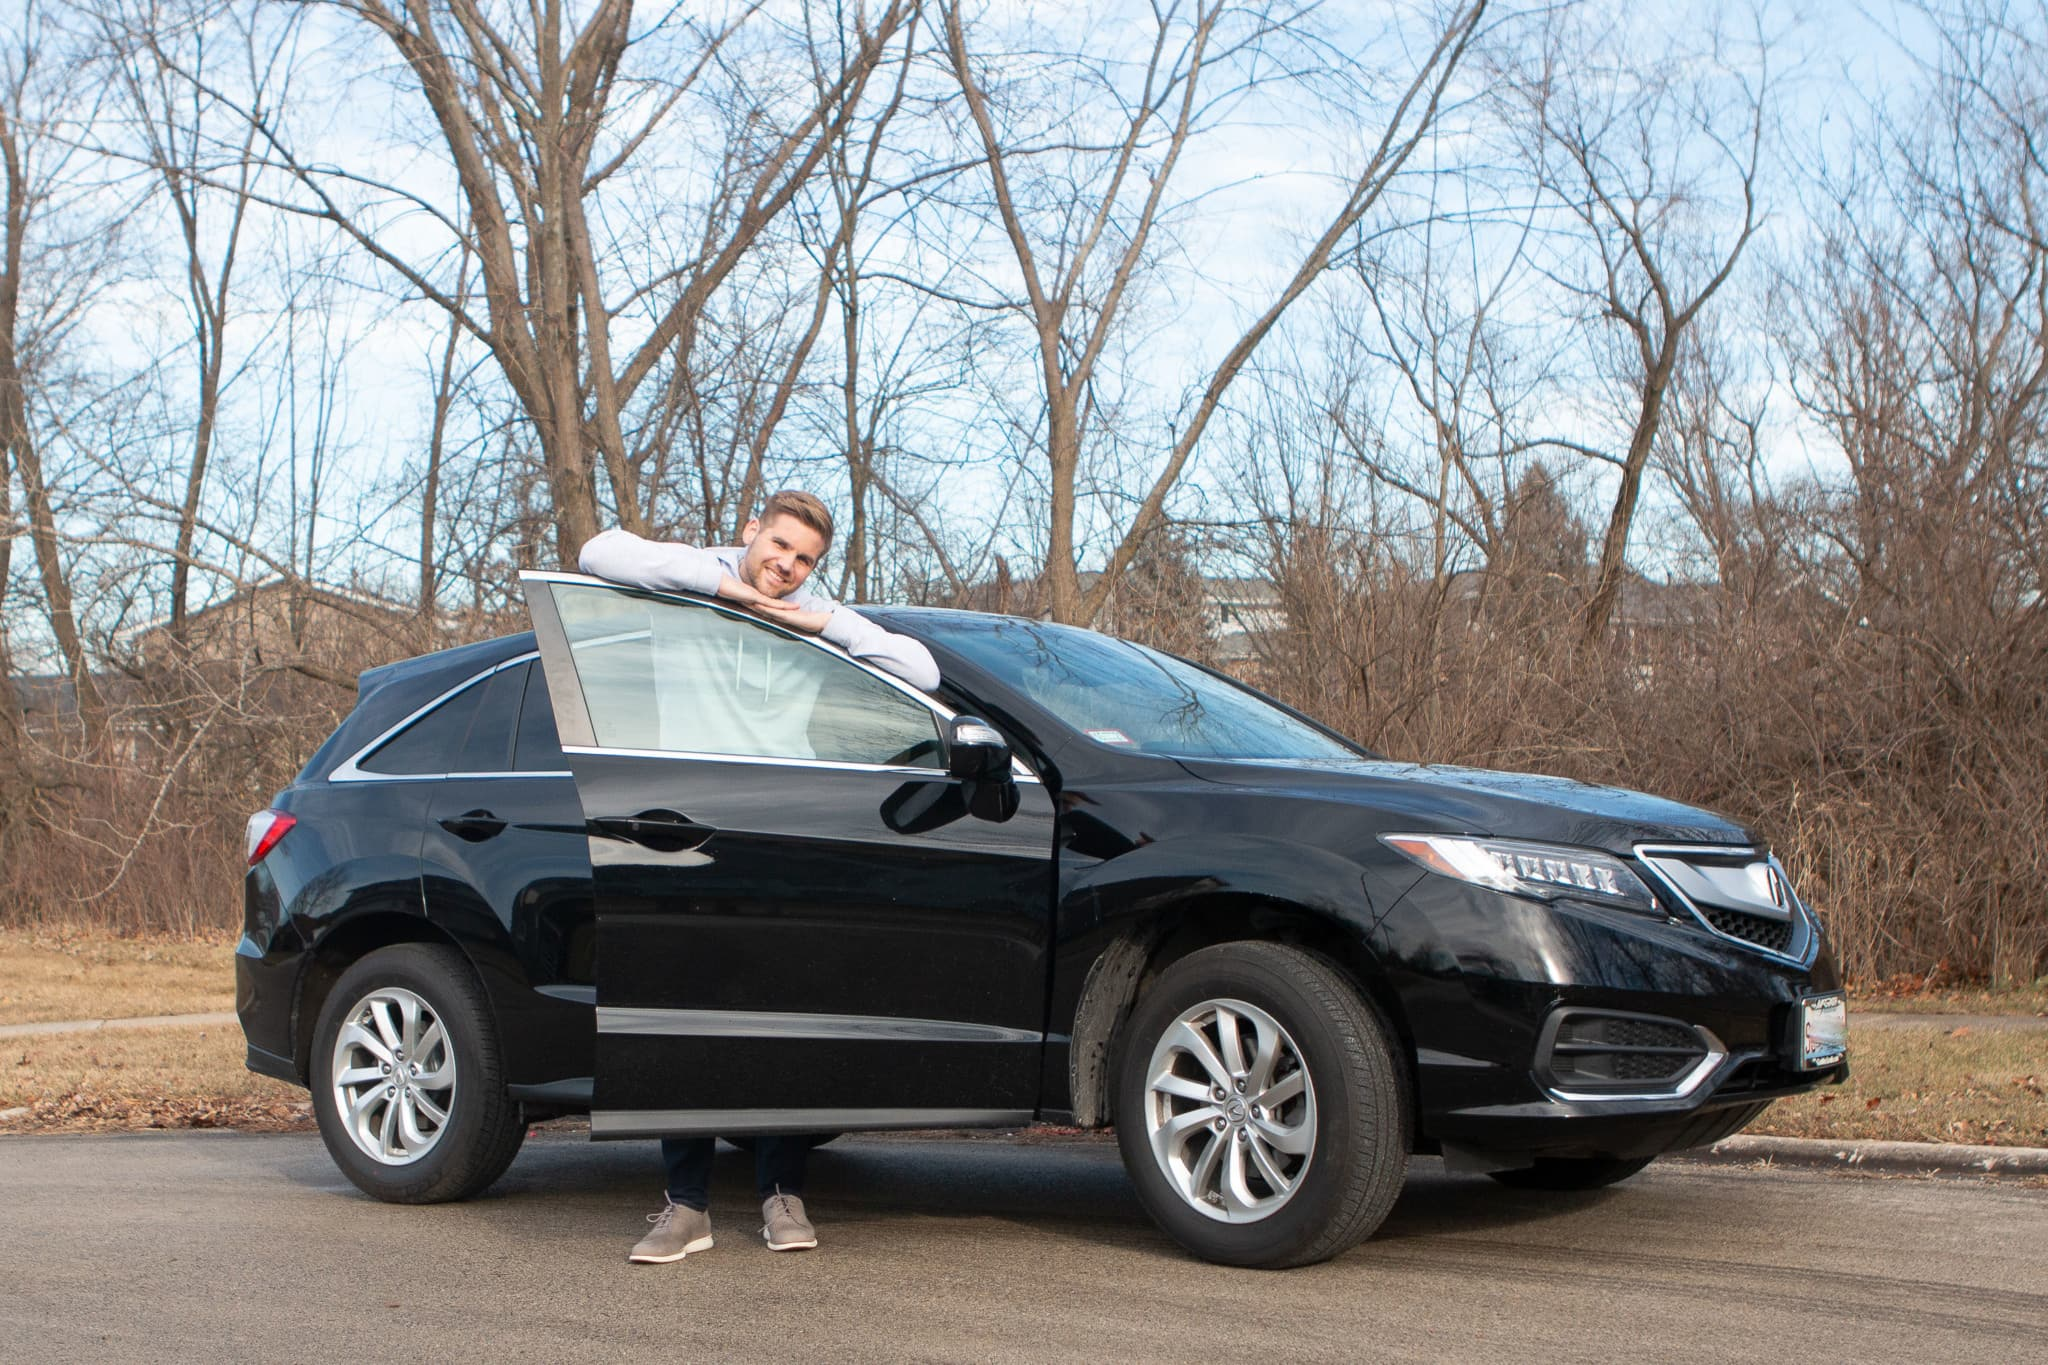 Finn and our new Acura RDX